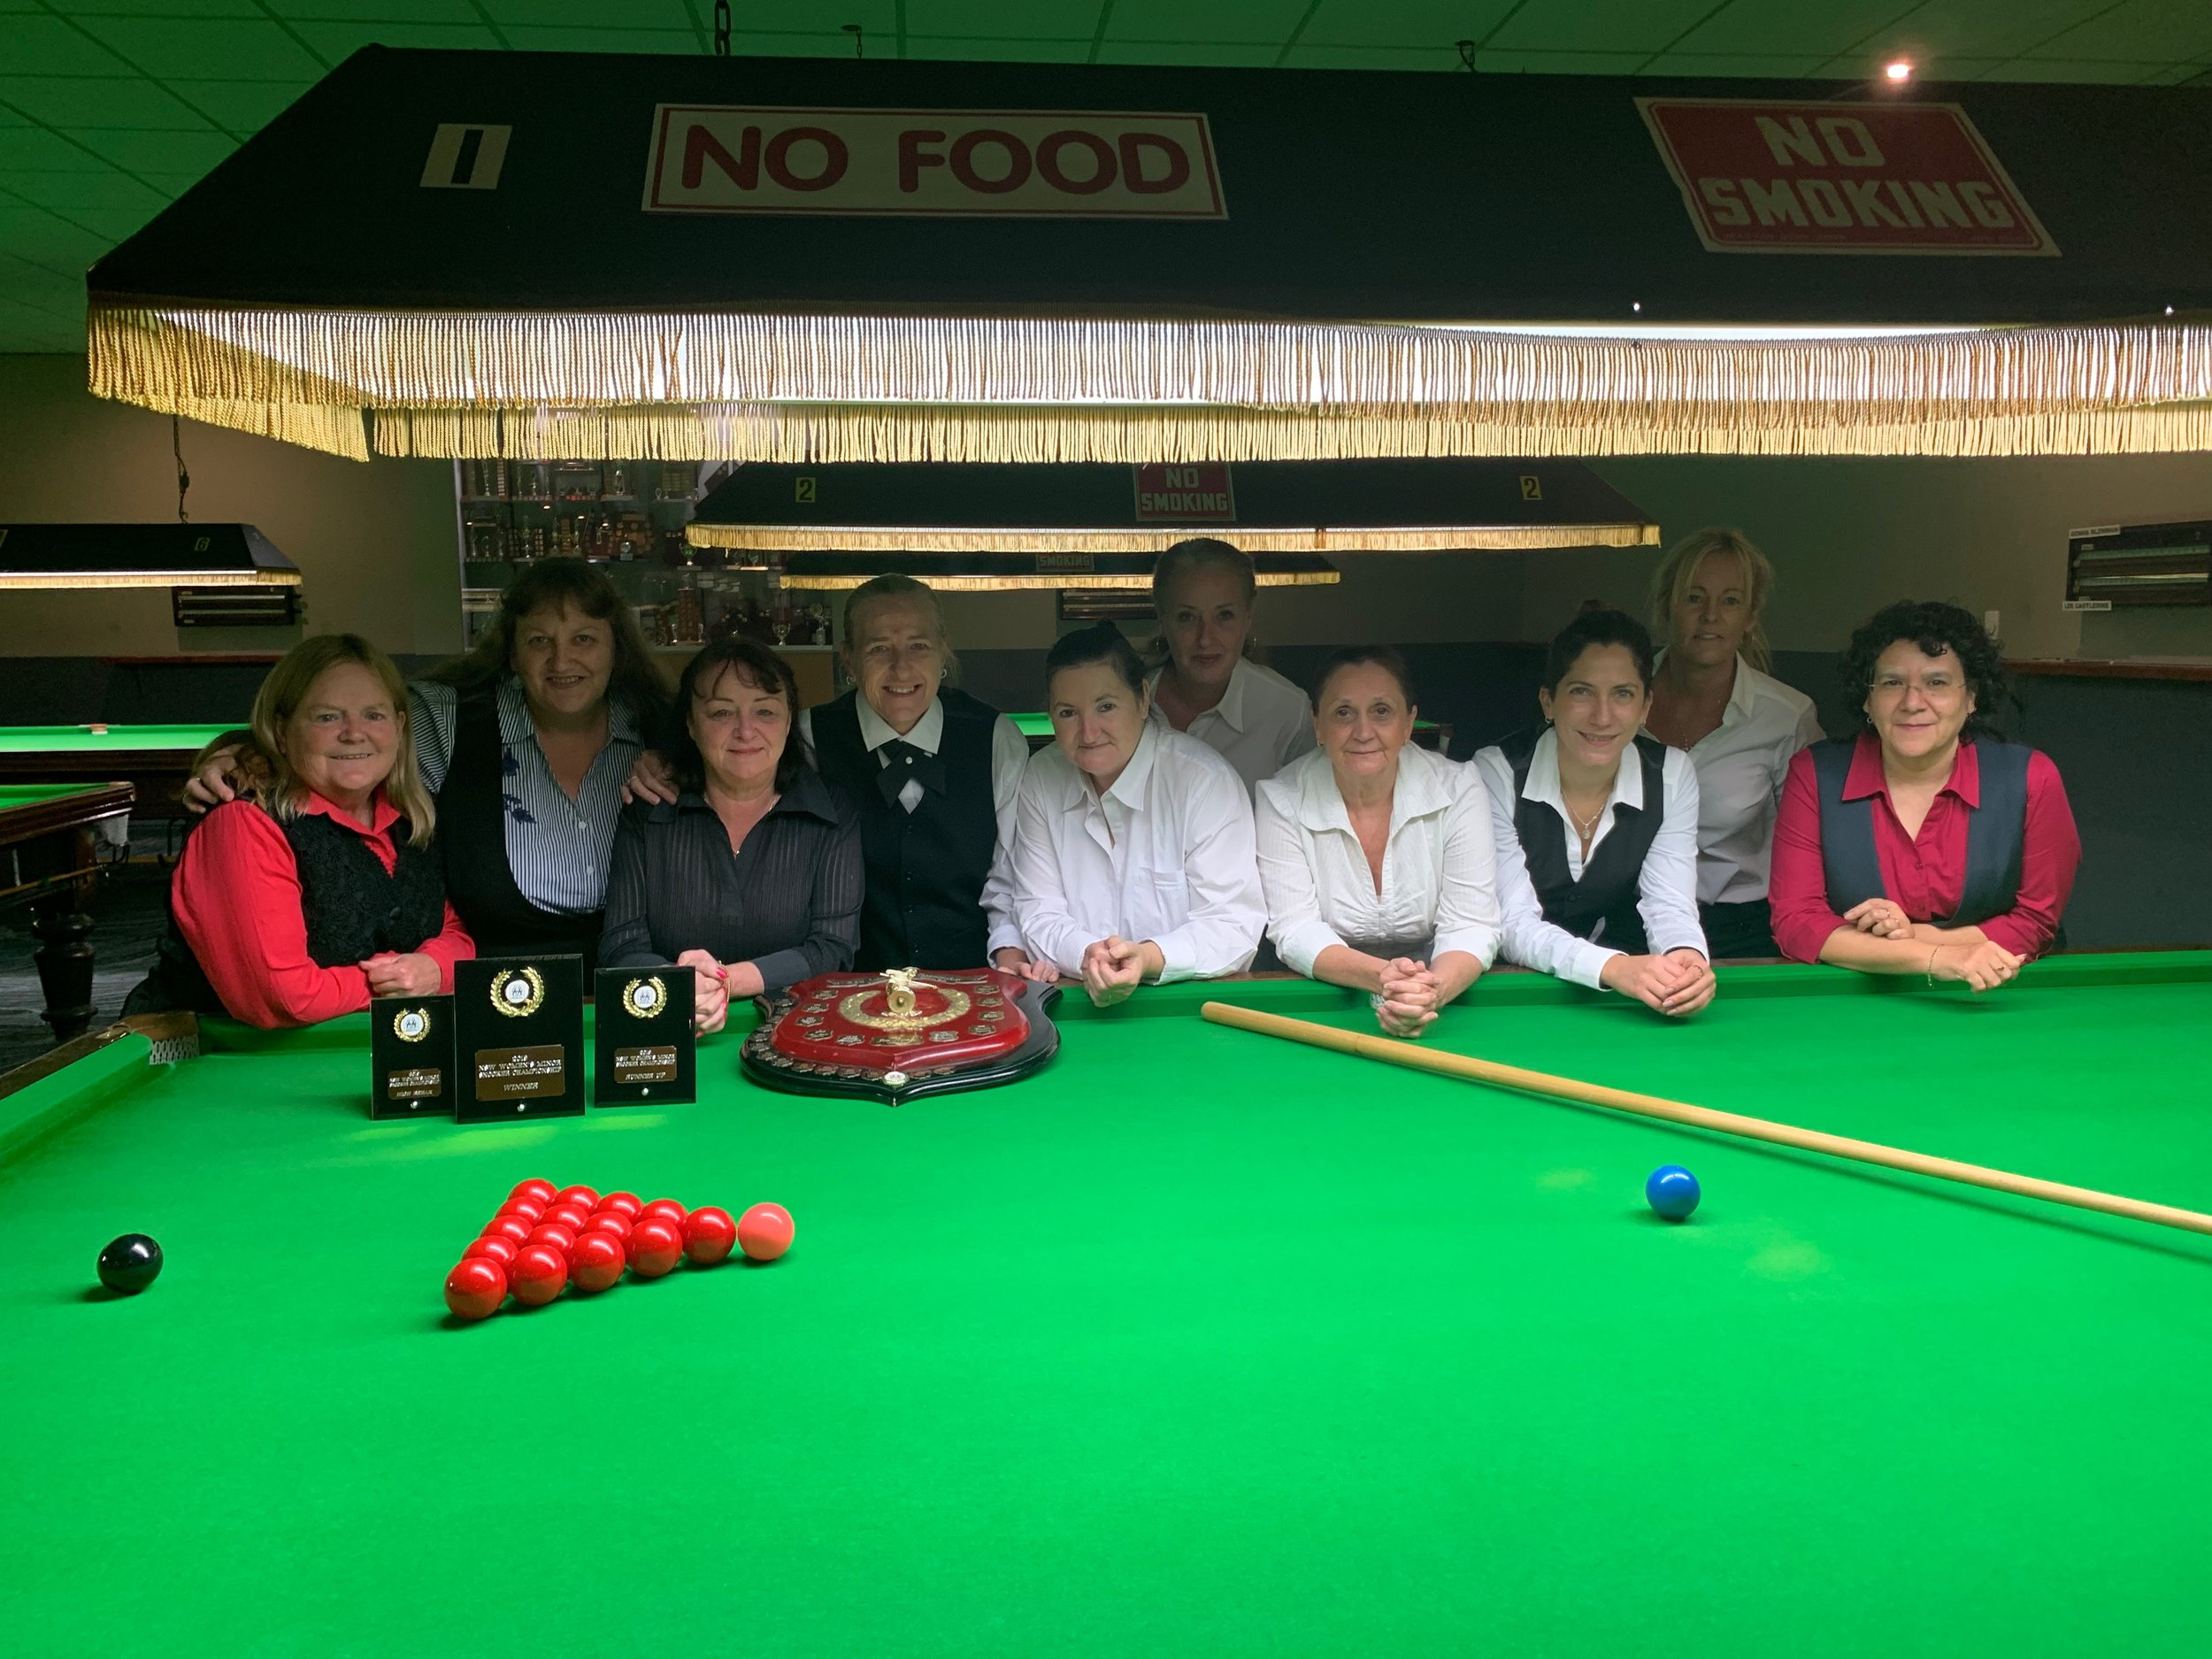 2019 NSW State women's minor snooker championship at Club toukley rsl